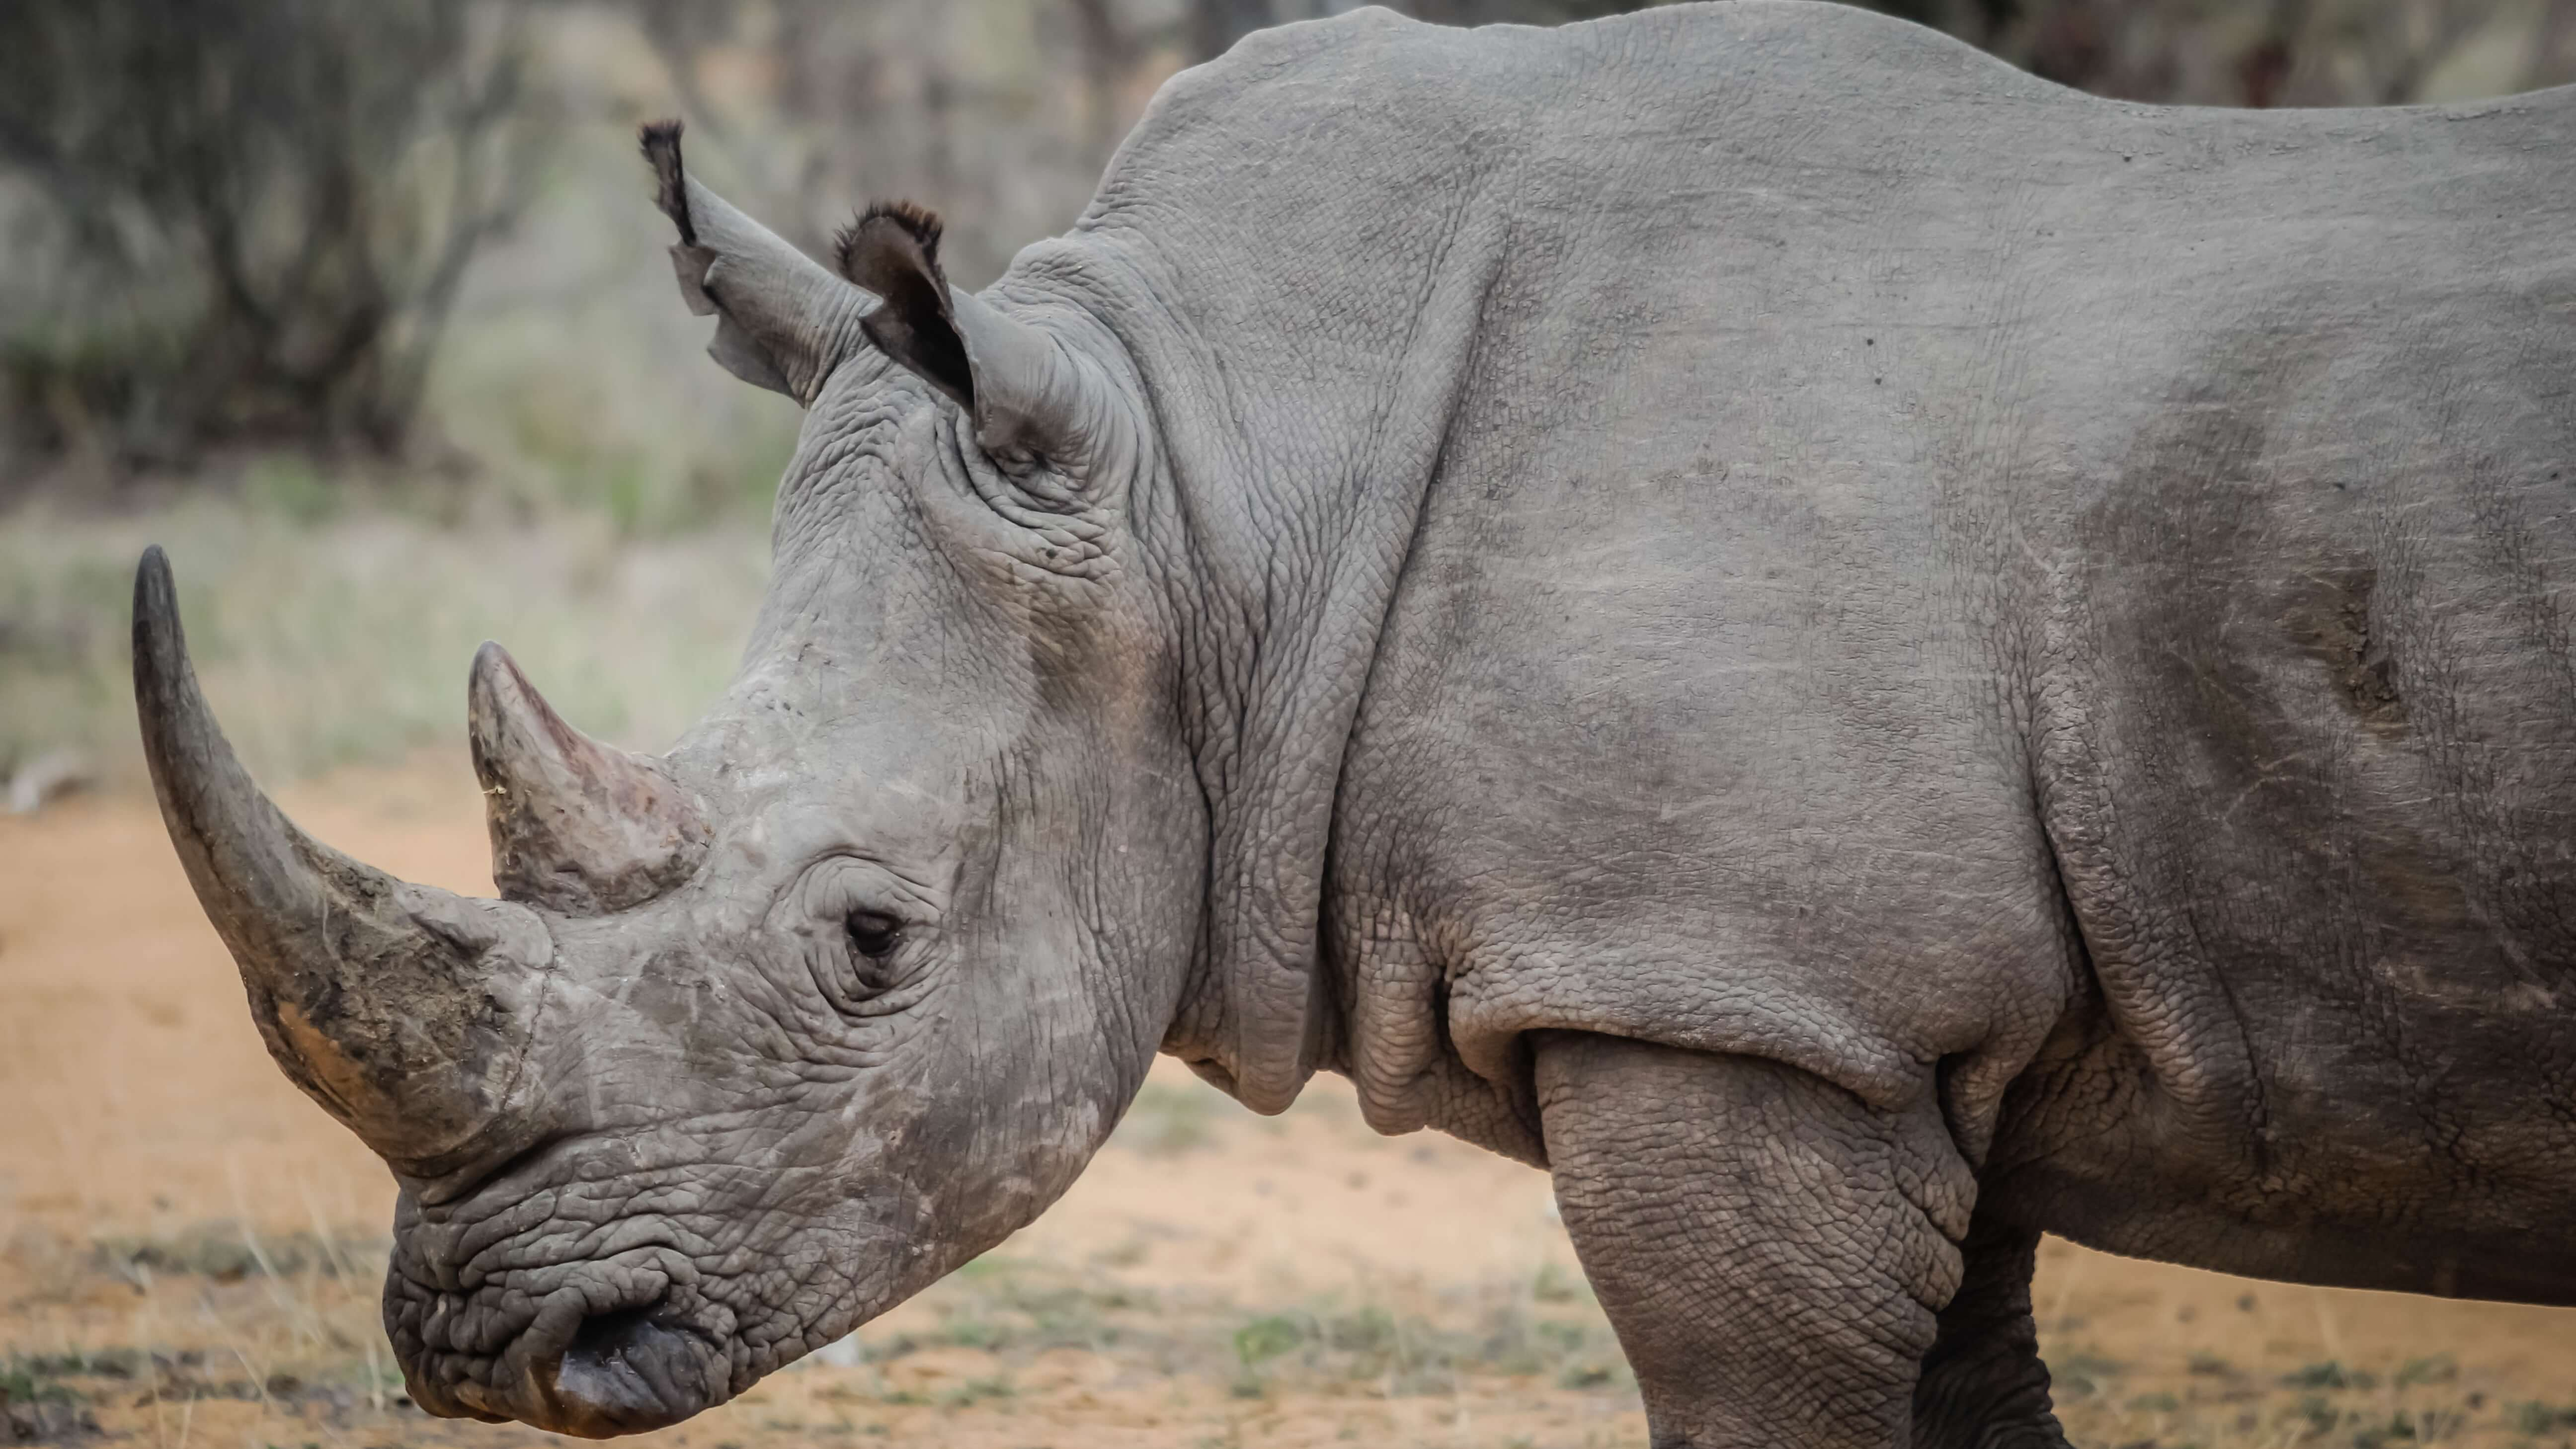 Illinois Becomes 9th State to Ban the Sale of Ivory and Rhinoceros Horns